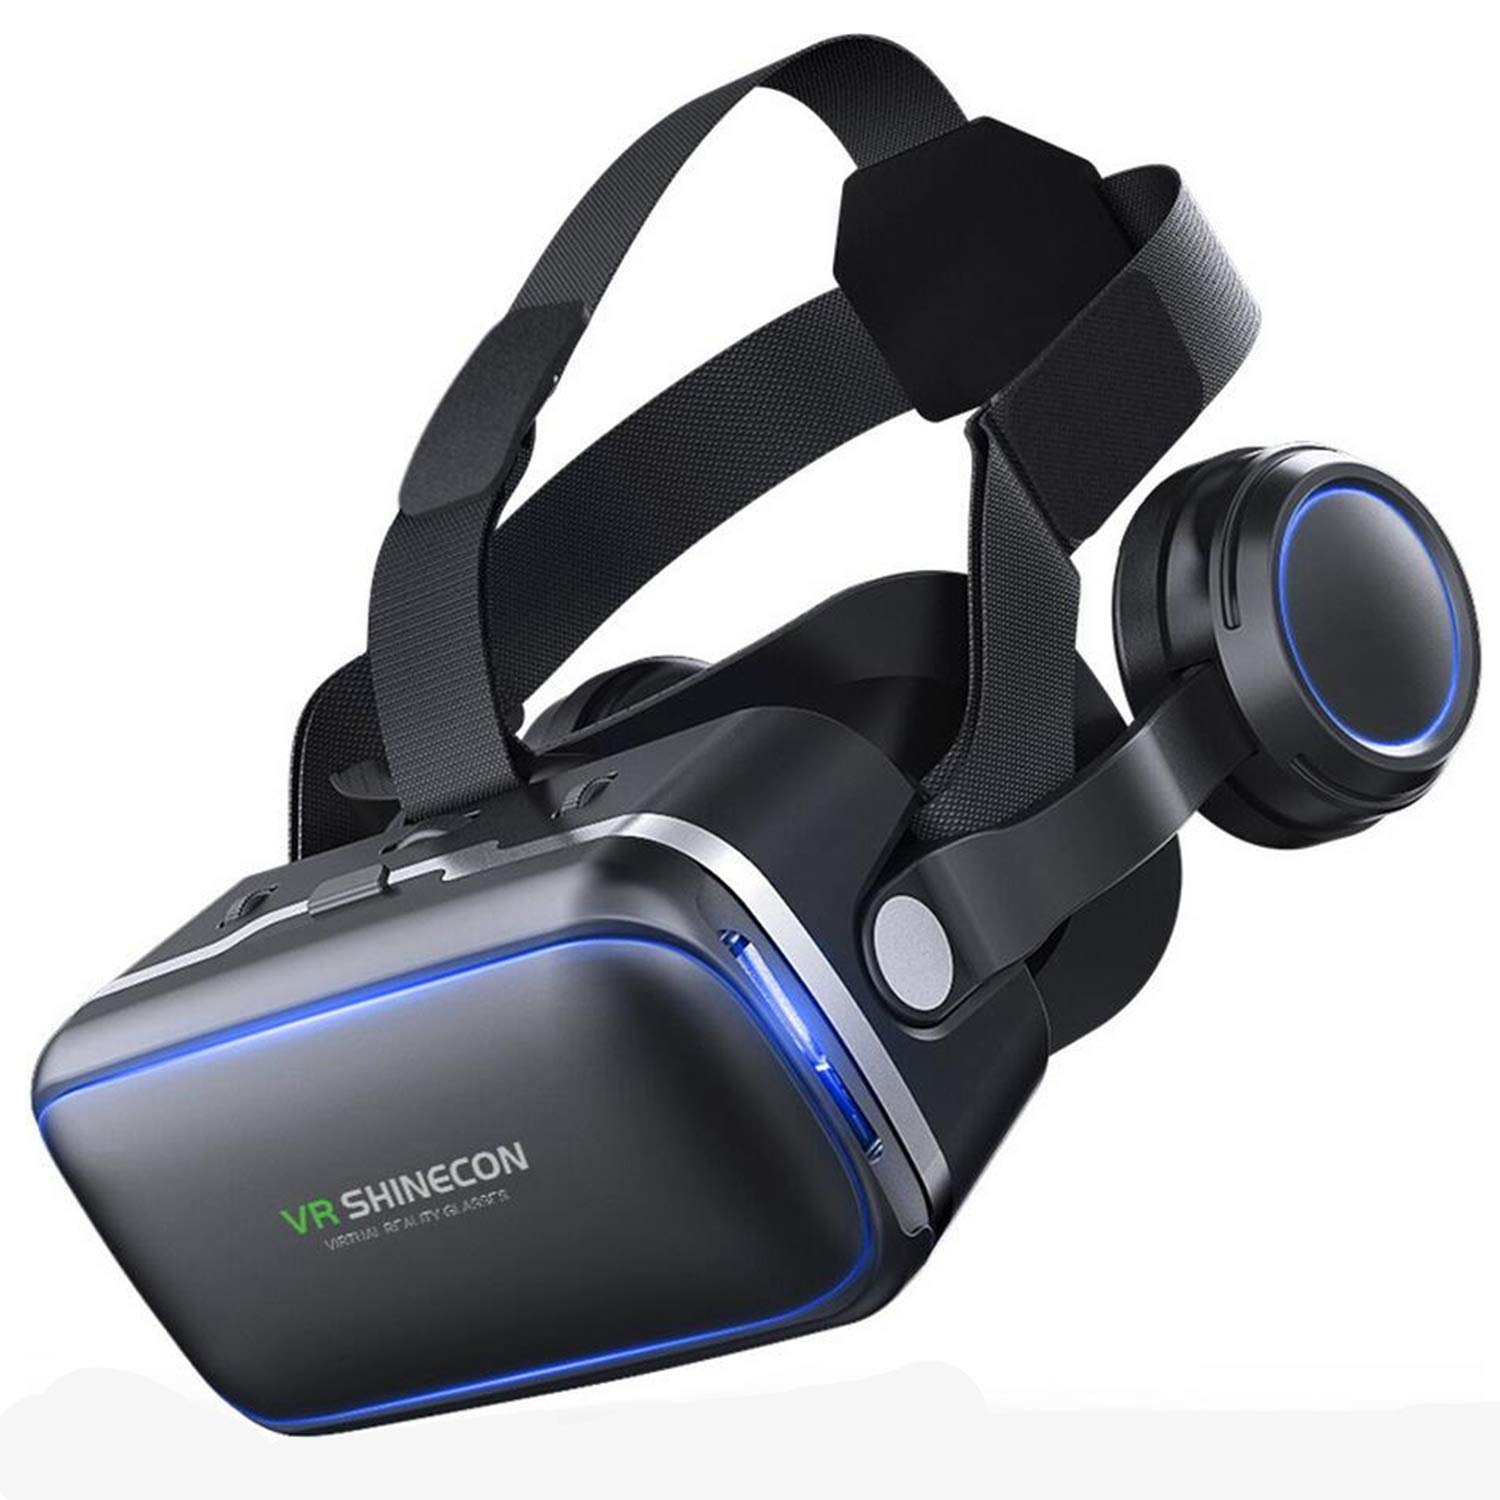 "VR Headset Virtual Reality 3D Glasses Headset w/ 100°FOV & Stereo Over Ears Headphones, VR for 3D Movies Games for iPhone X 8 7 6S 6 Plus, Samsung S9 S8 S7 S6 Edge+ & More 4.7-6.0"" Smartphones, Black"